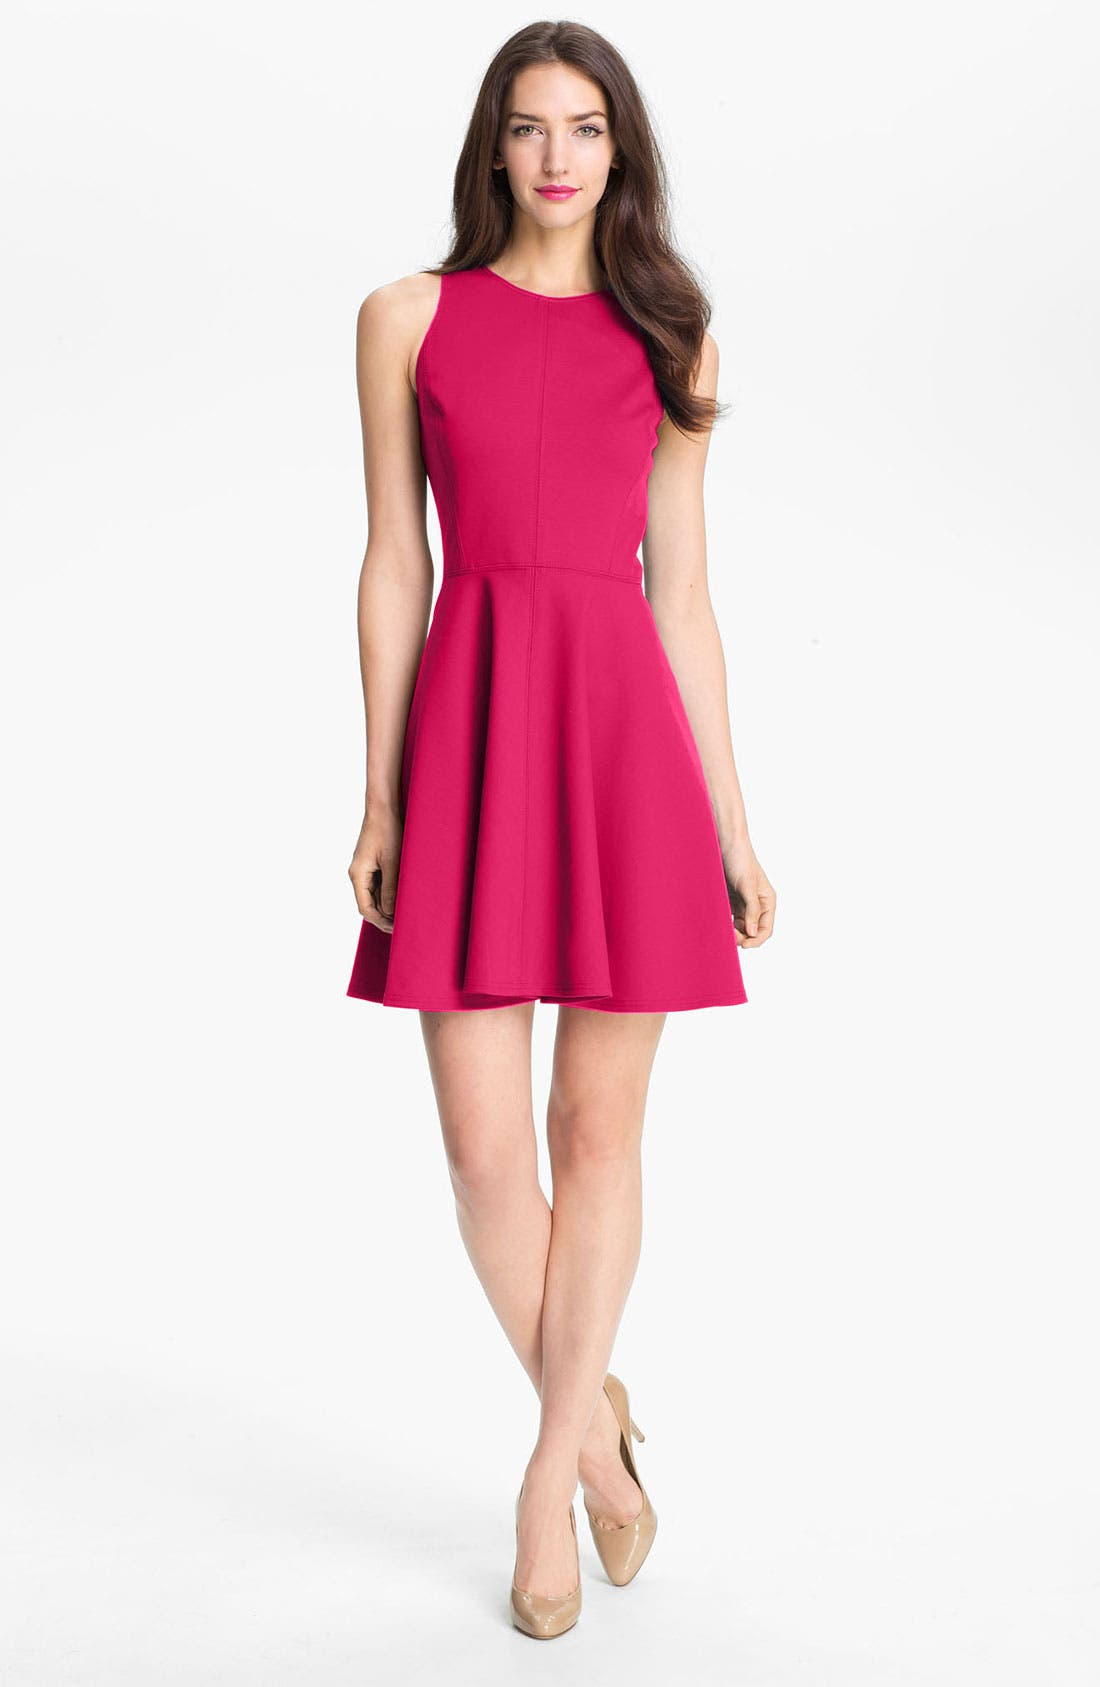 Alternate Image 1 Selected - Rebecca Taylor Pleated Ponte Knit Dress